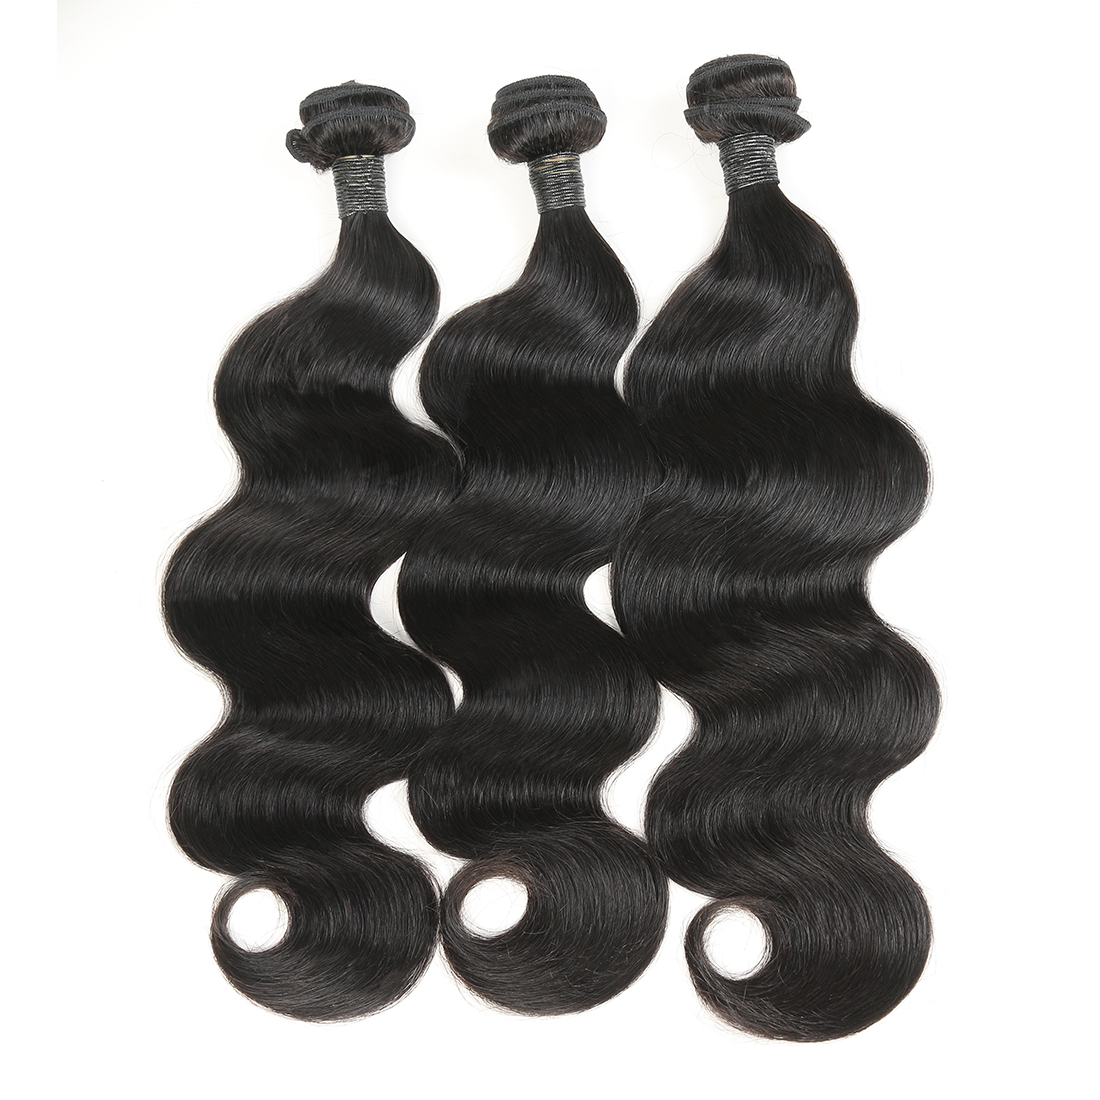 1/3/4 Bundles Peruvian Body Wave Hair Extensions zing silky 100% Human Hair Bundles 300g Natural Color Remy Hair Weave for black